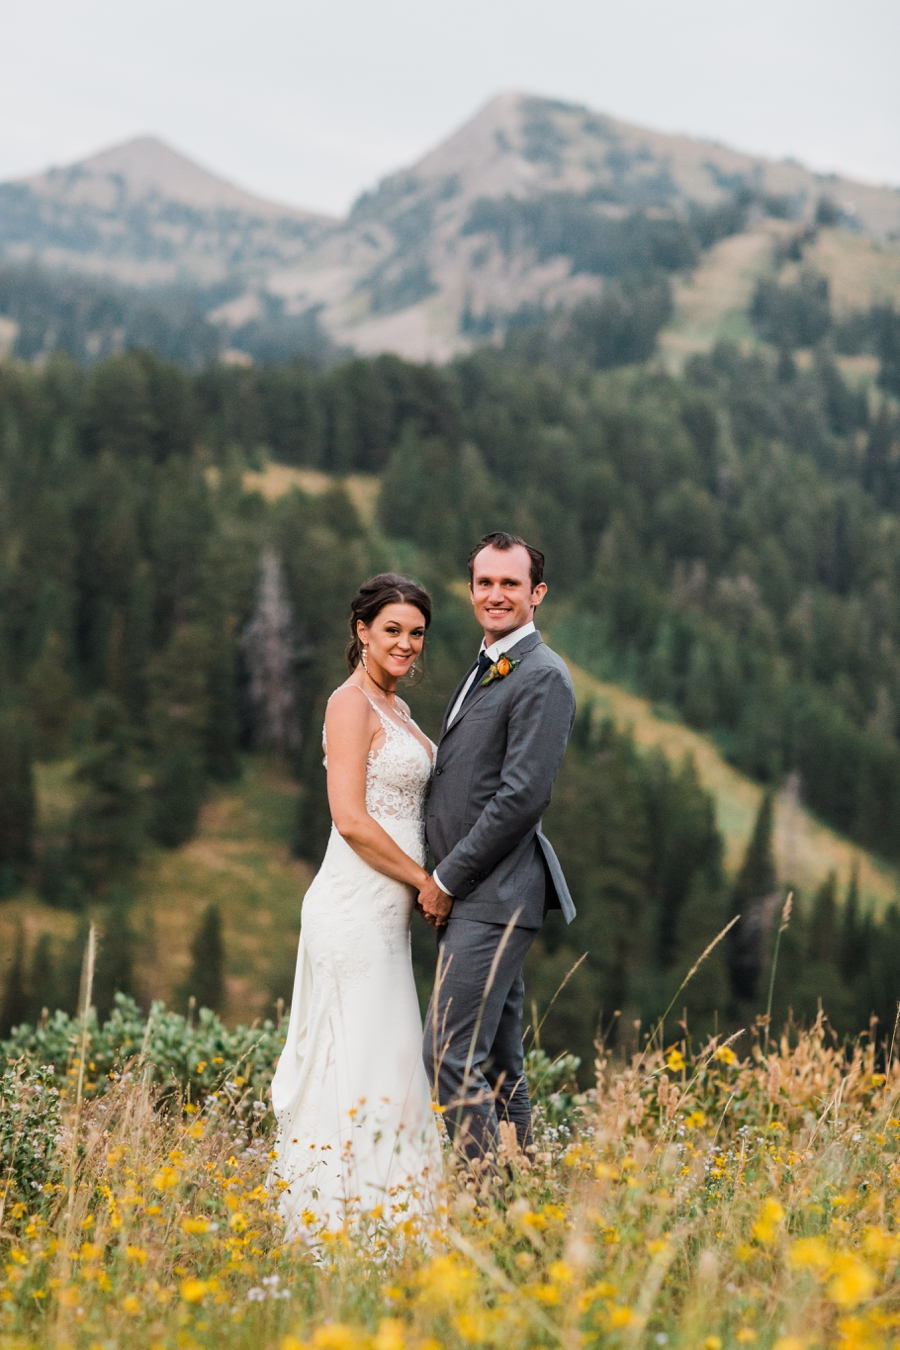 Grand Targhee Ski Resort Wedding in Jackson Hole by Amy Galbraith Photography